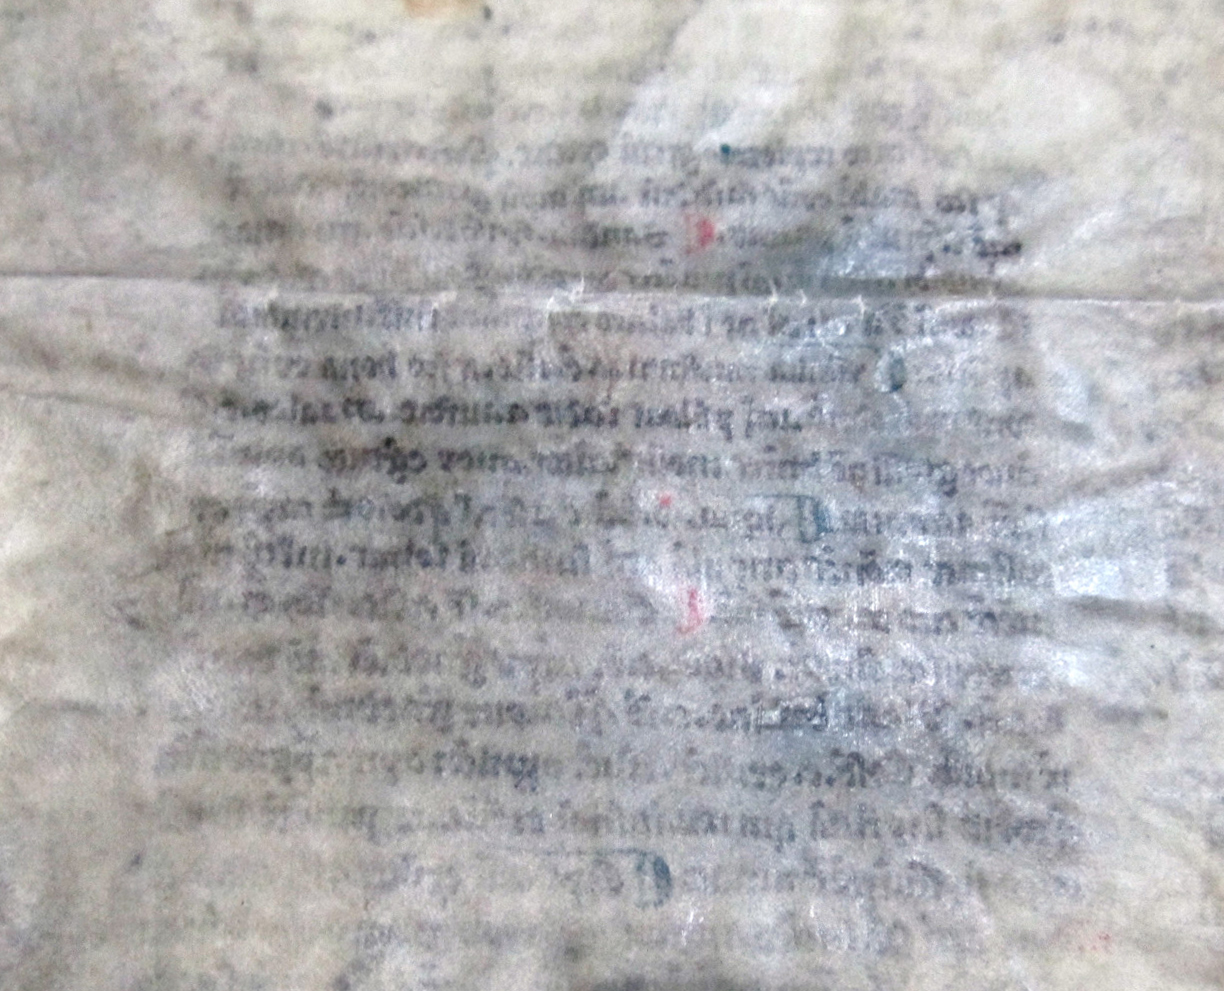 Show Through from the lower part of one column of text on the 'interior' of the bifolium onto its exterior. Reproduced by permission